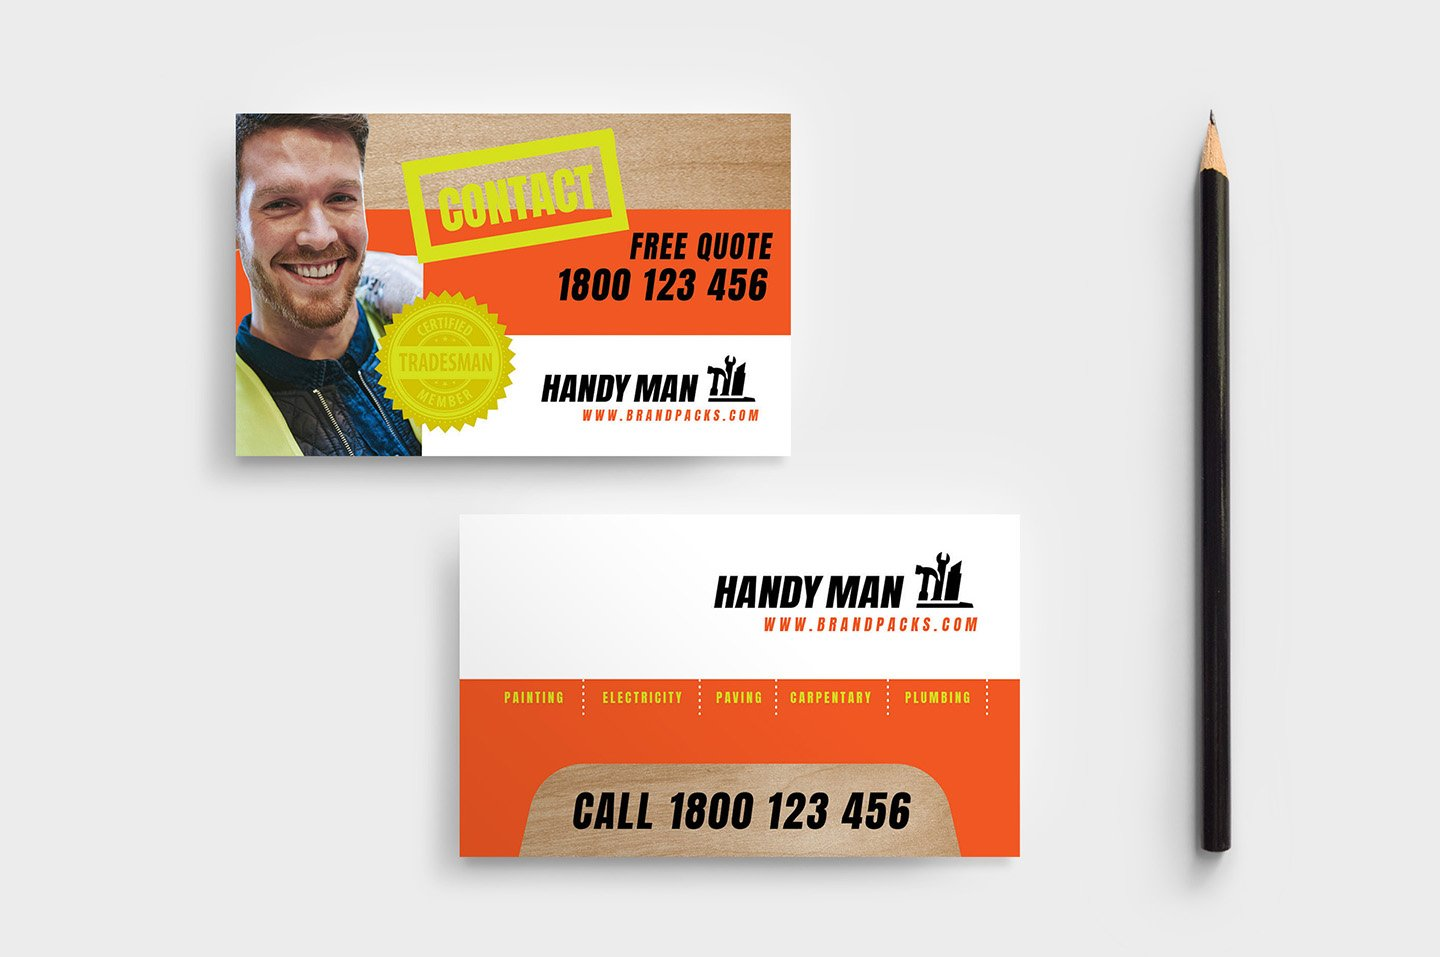 Handyman business card template business card templates creative handyman business card template business card templates creative market friedricerecipe Gallery